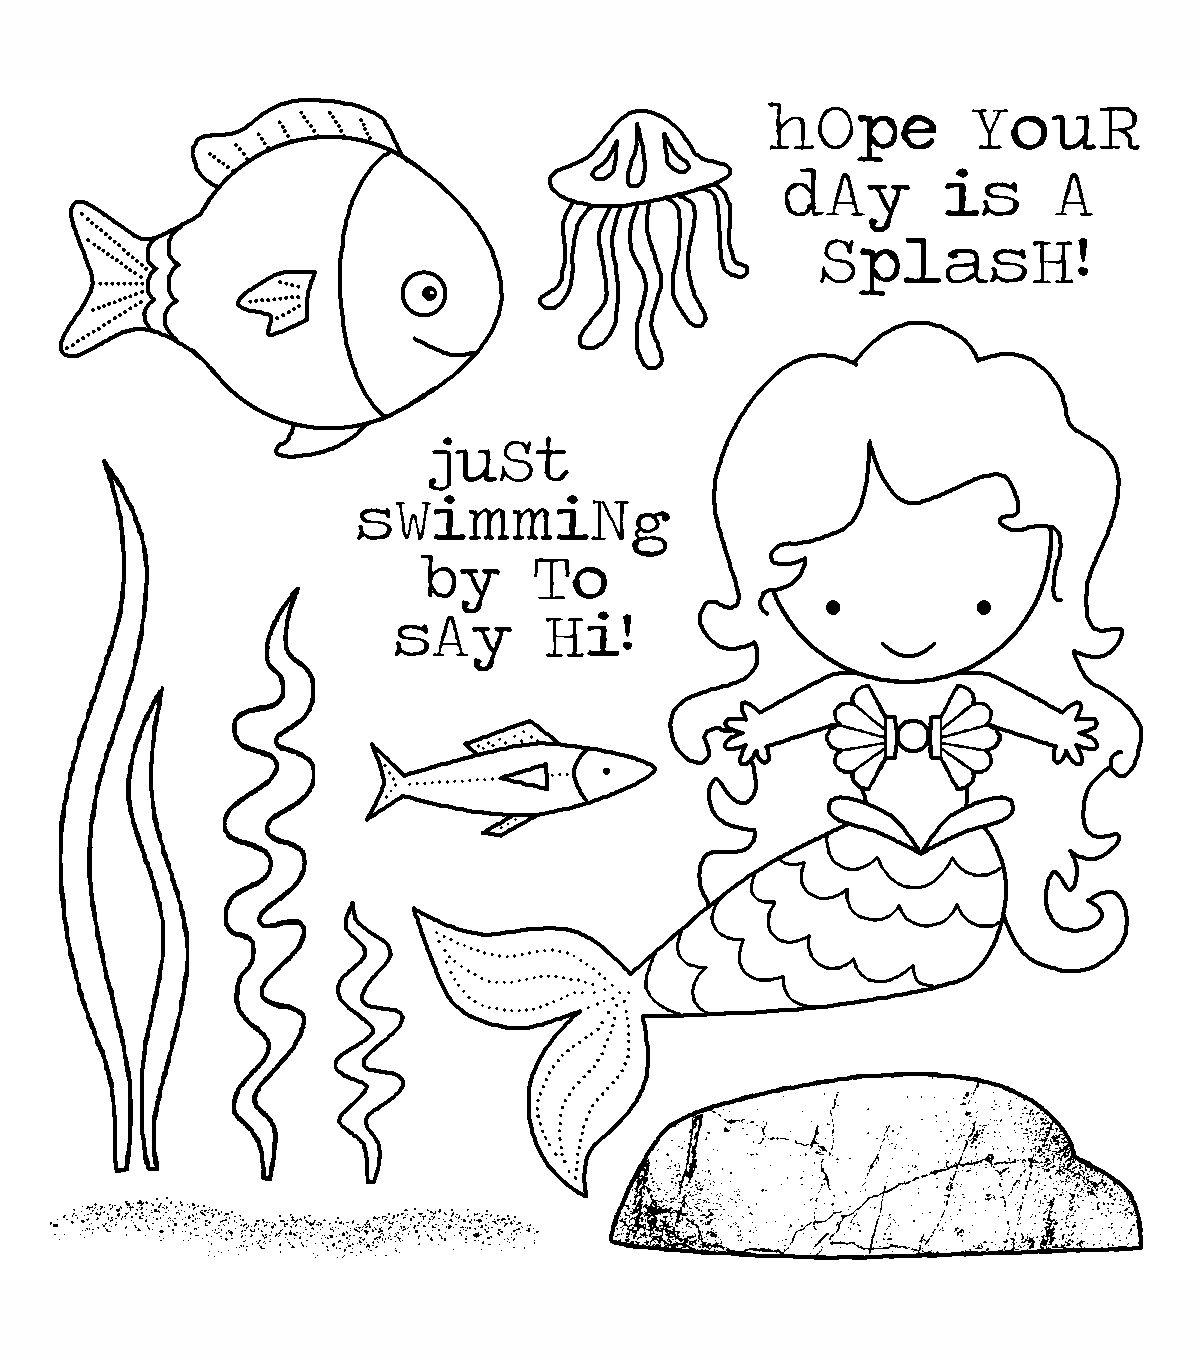 mermaid kitten coloring pages kitty cat coloring pages mermaid kitten pages coloring